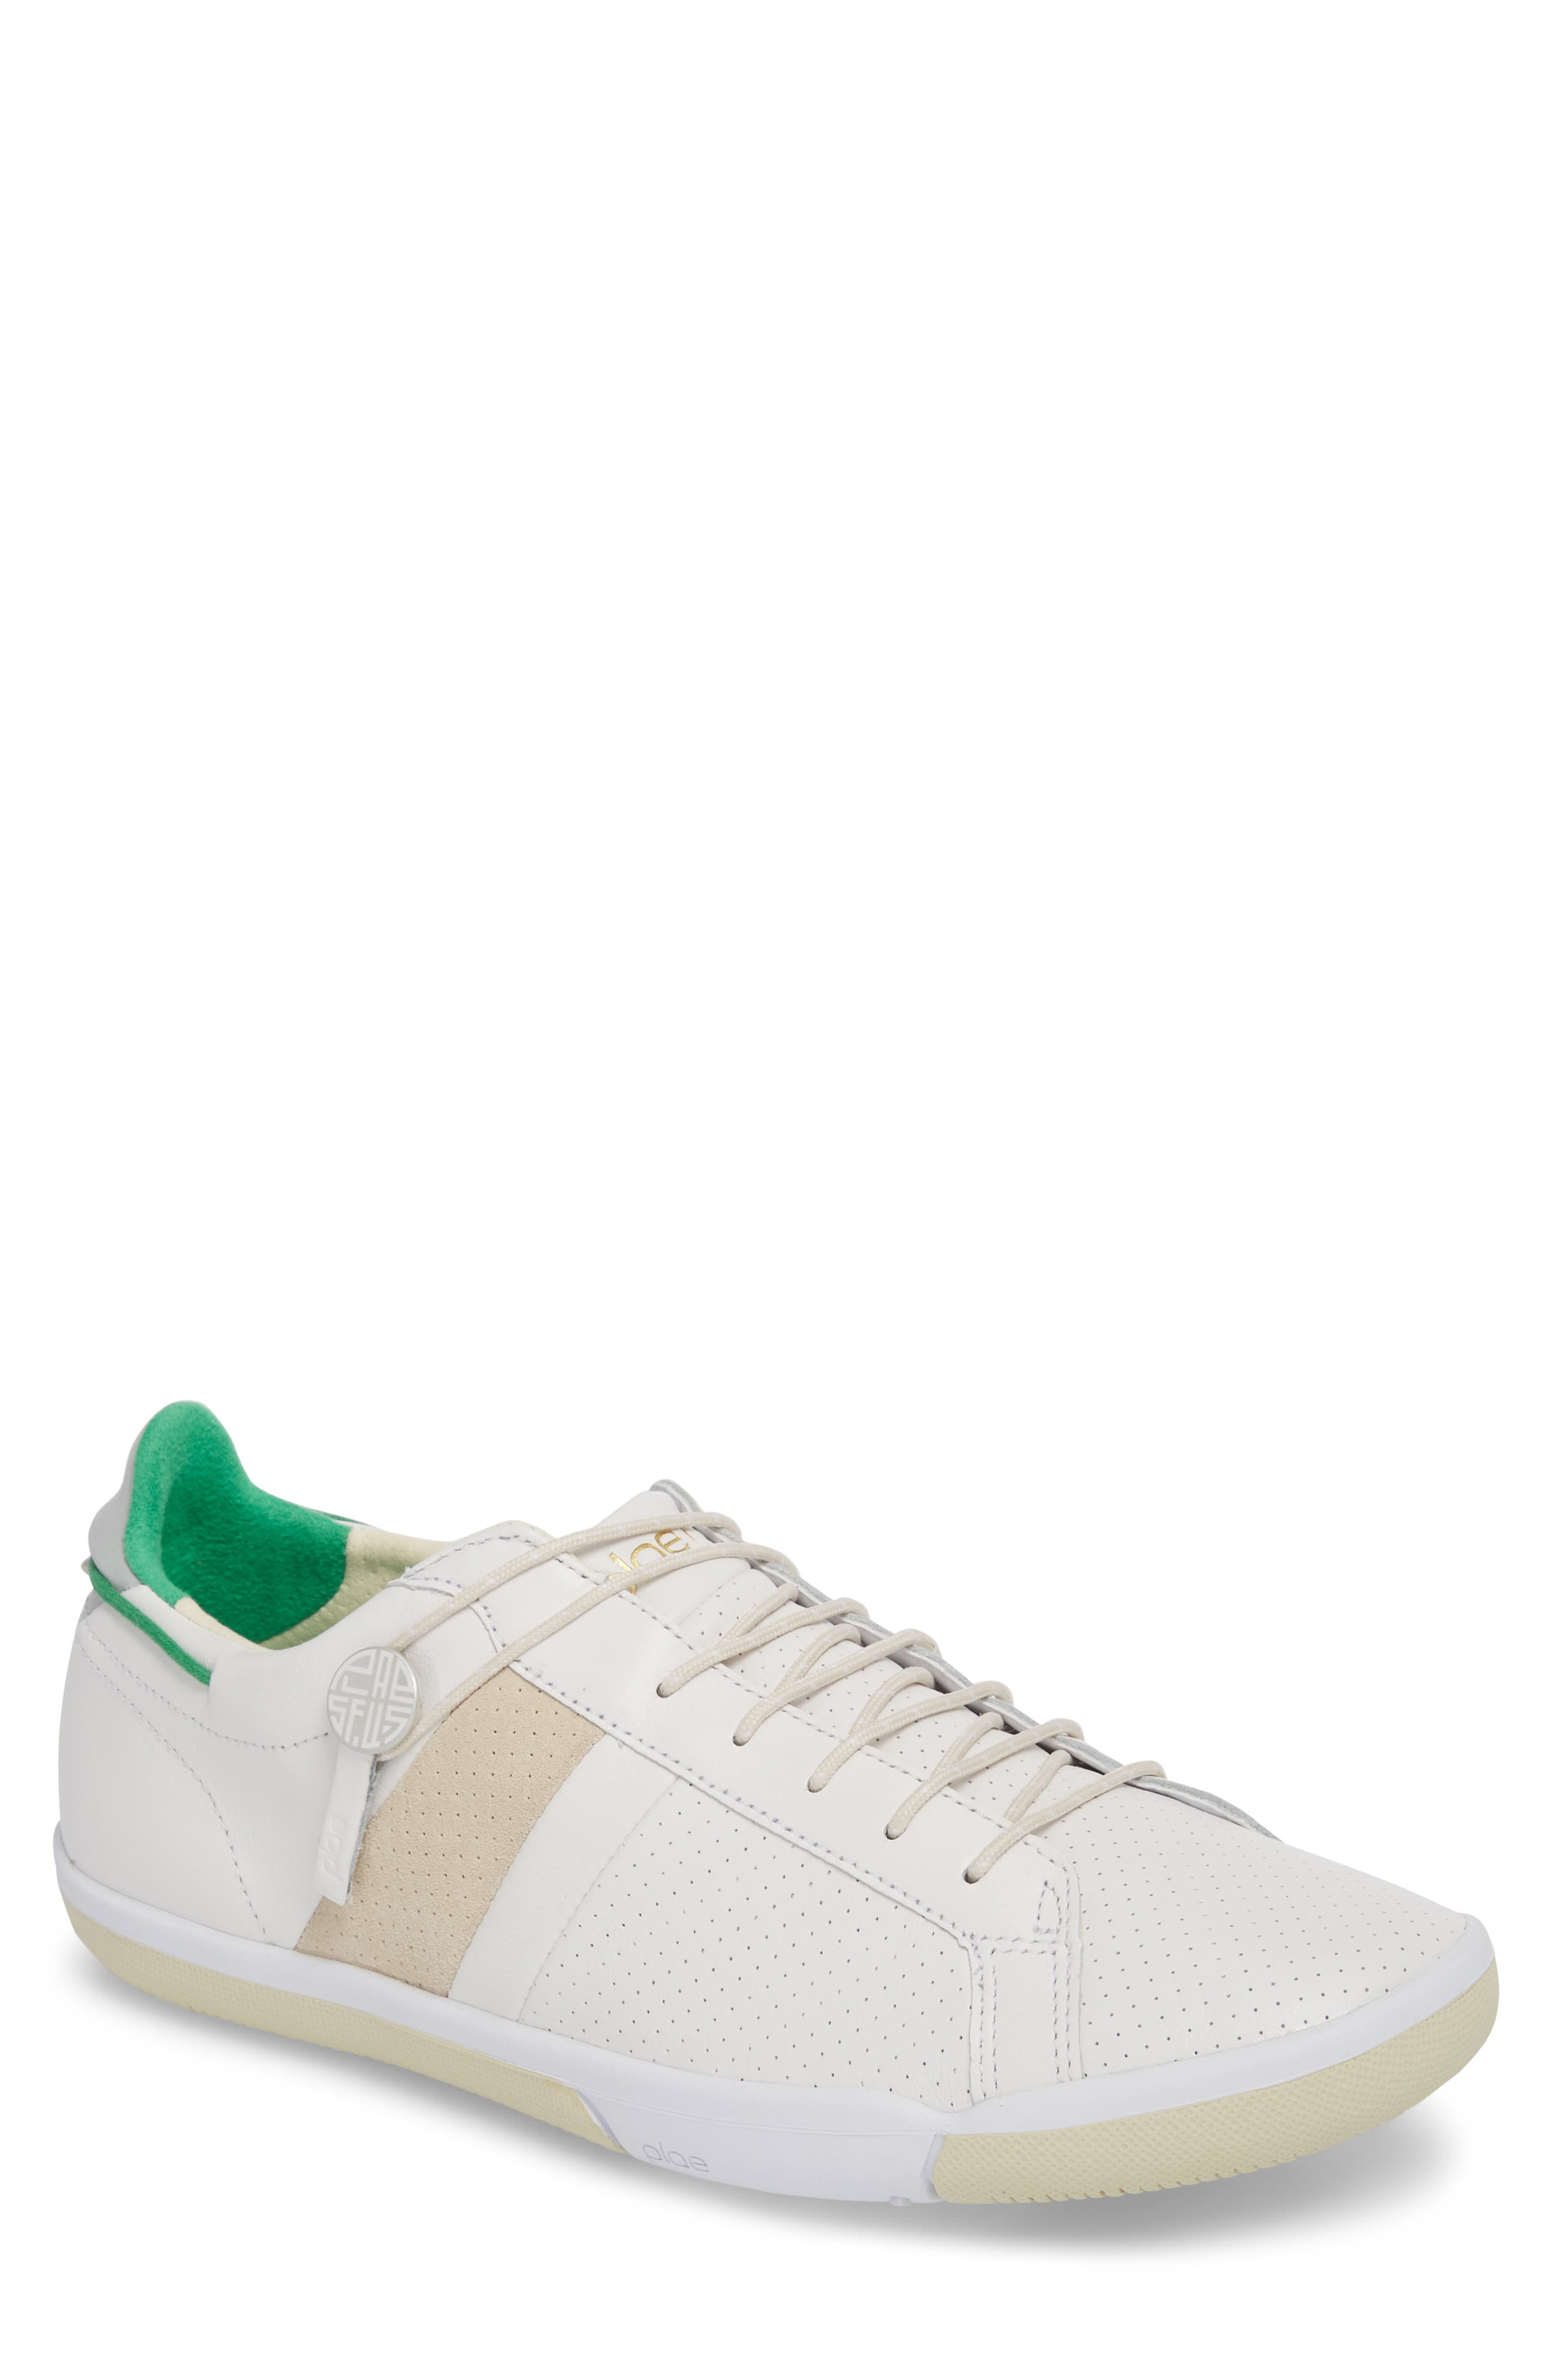 Mulberry Low Top Sneaker,                             Main thumbnail 1, color,                             WHITE